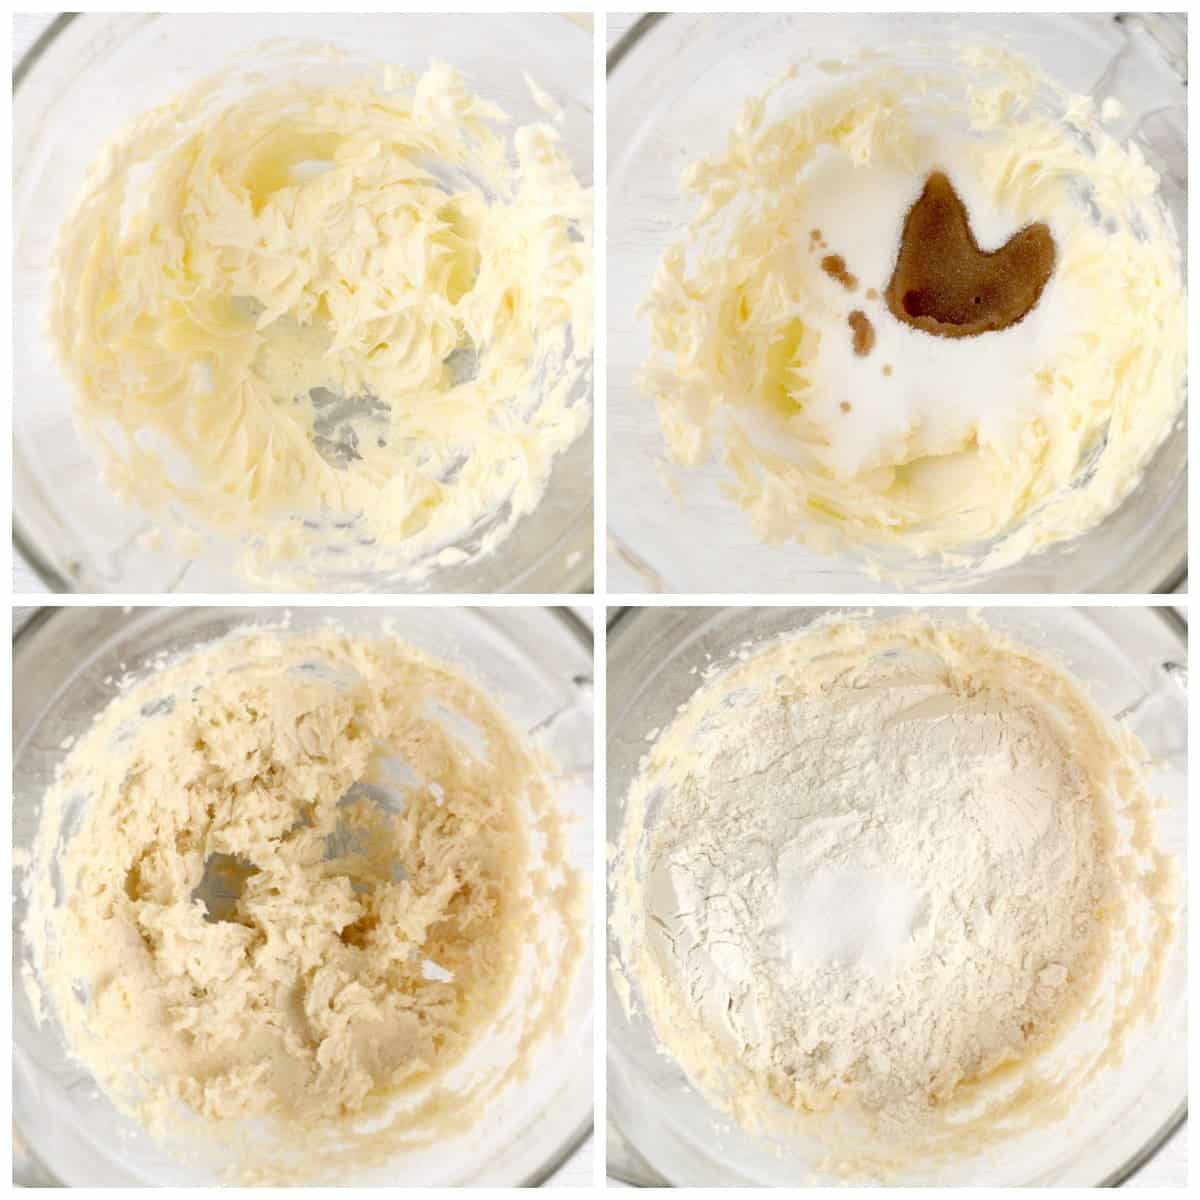 Four process photos. First one, butter whipped in a mixing bowl. Second one, wet ingredients added to whipped butter. Third one, Wet ingredients whipped together. Fourth one, dry ingredients put on top.